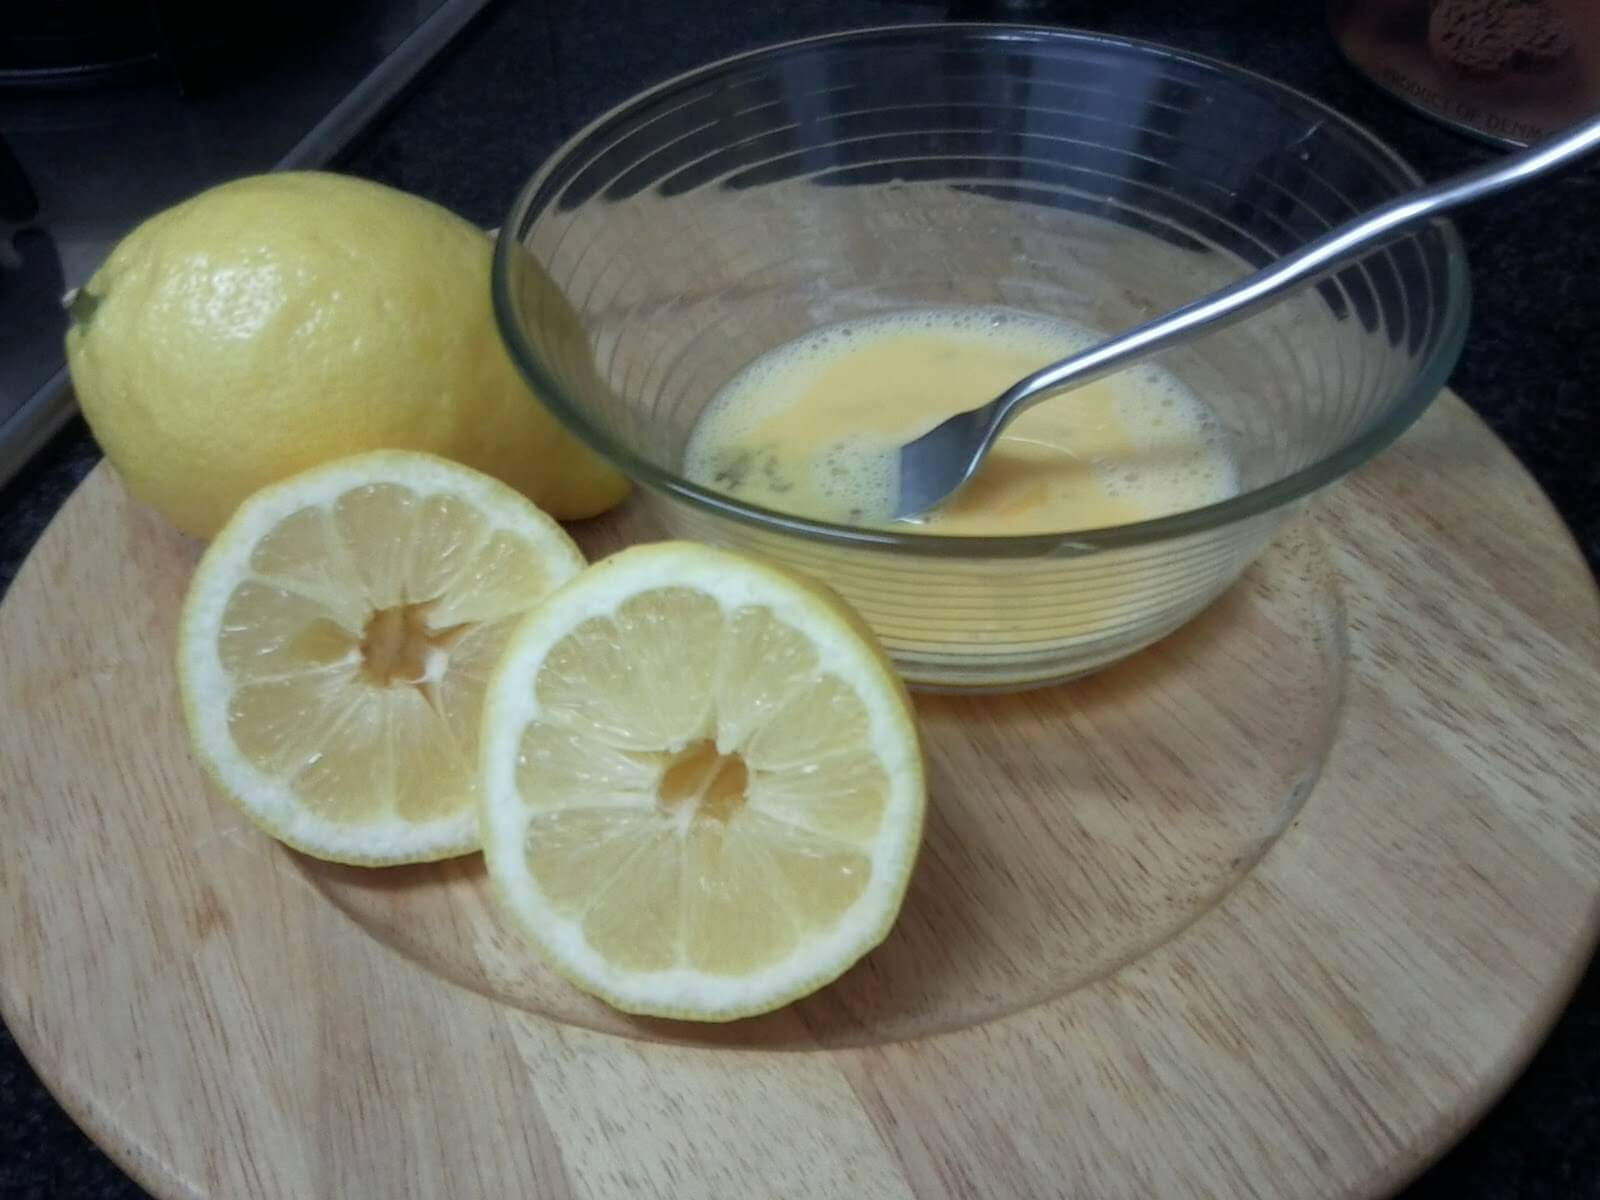 These are some of the ingredients for the lemon pie.